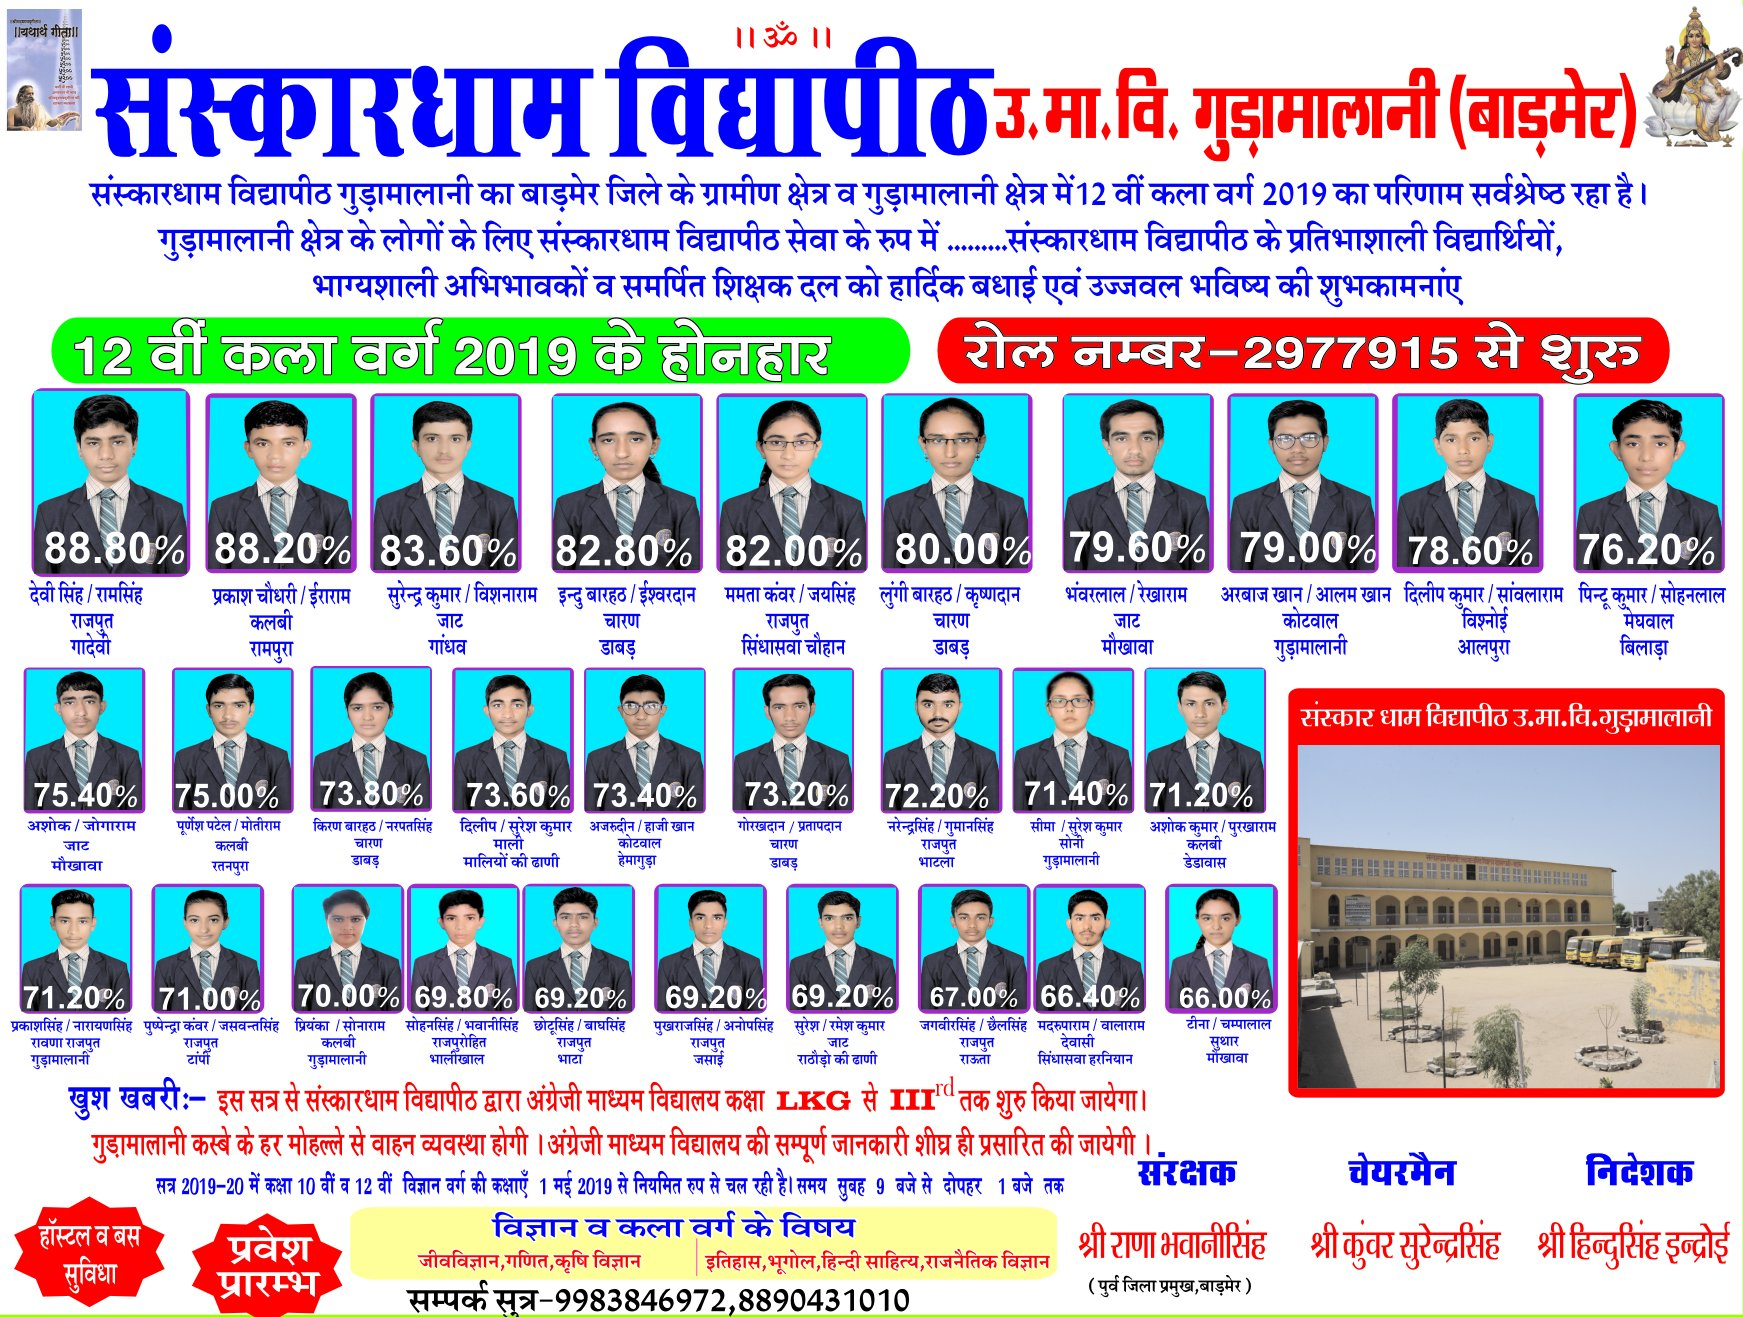 12th Arts Result 2019